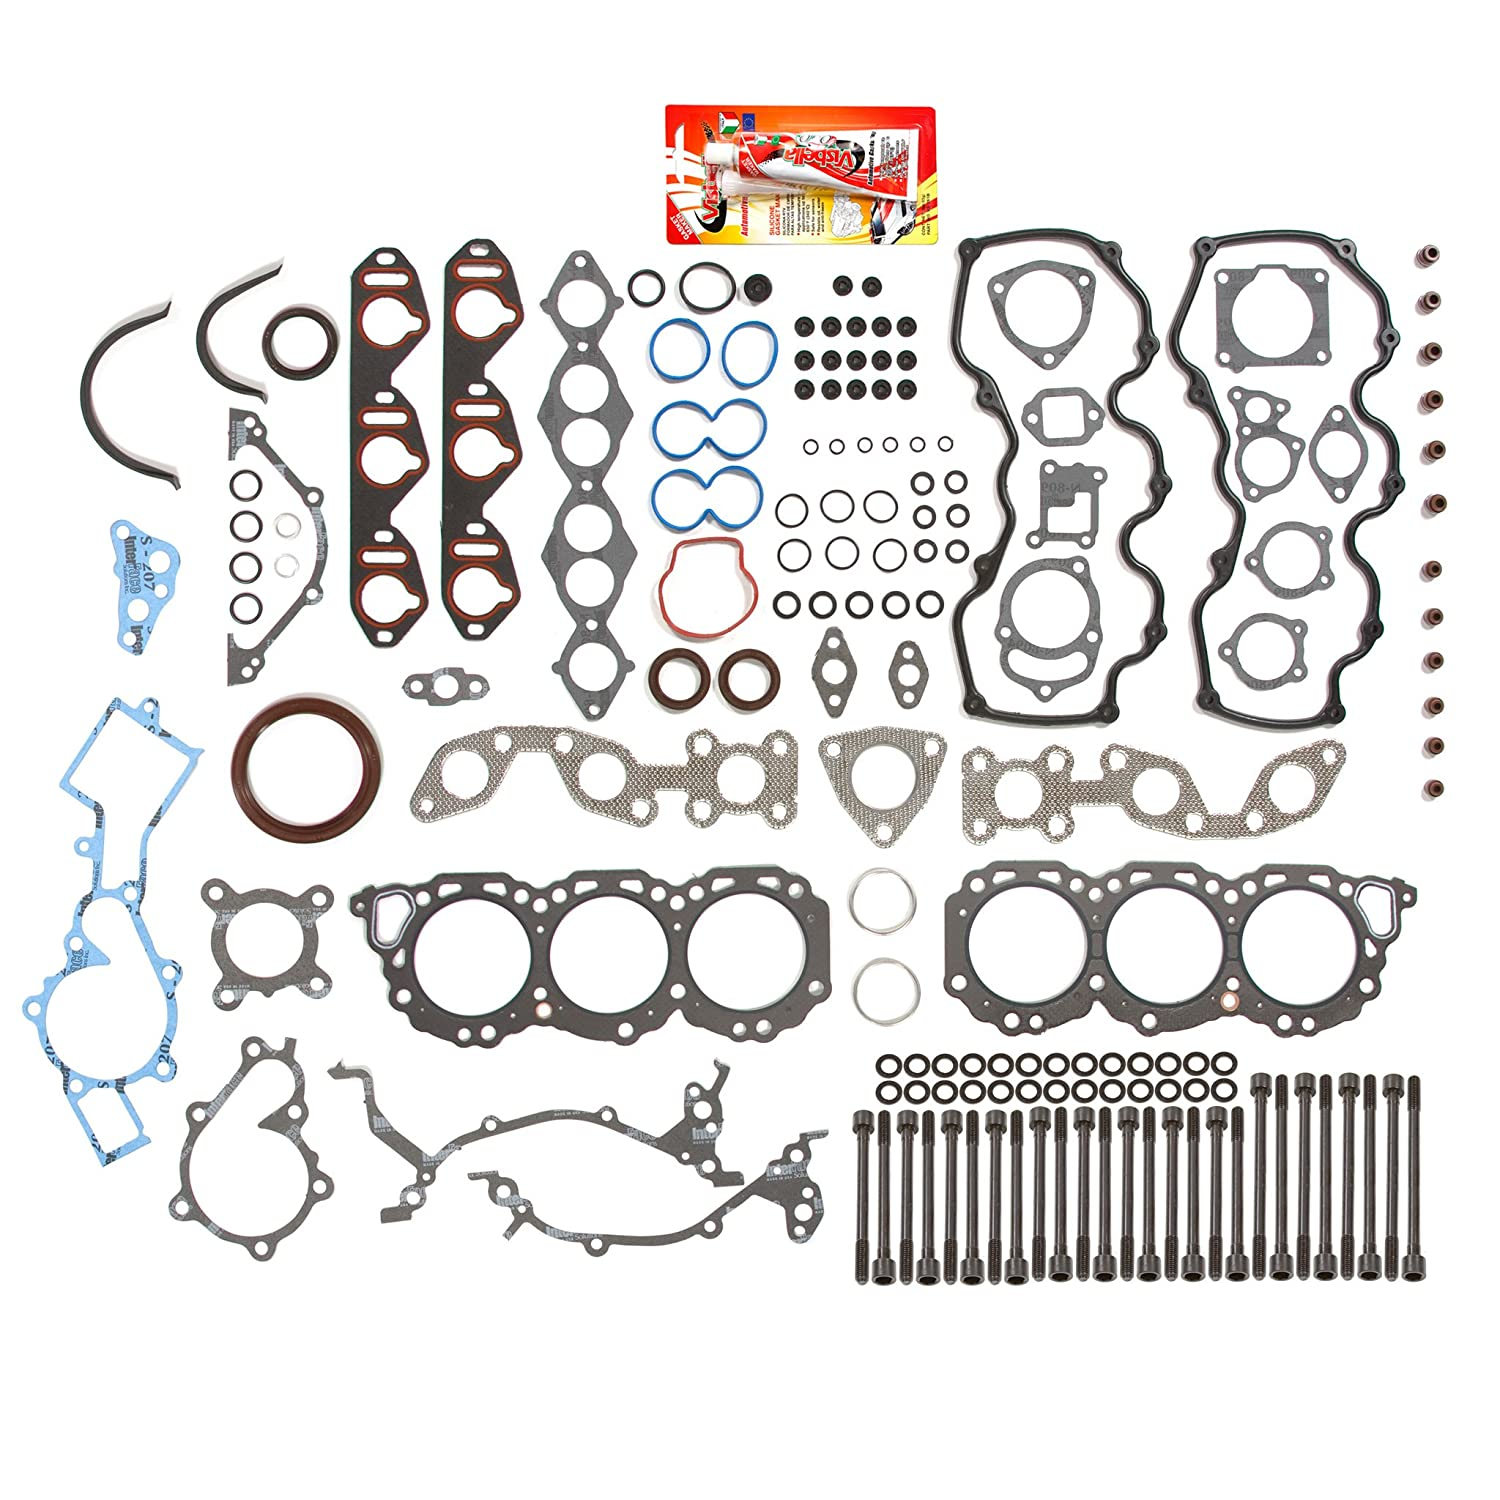 2000 Infiniti Q Head Gasket: 04 Frontier Timing Belt Diagram 3 3 Engine